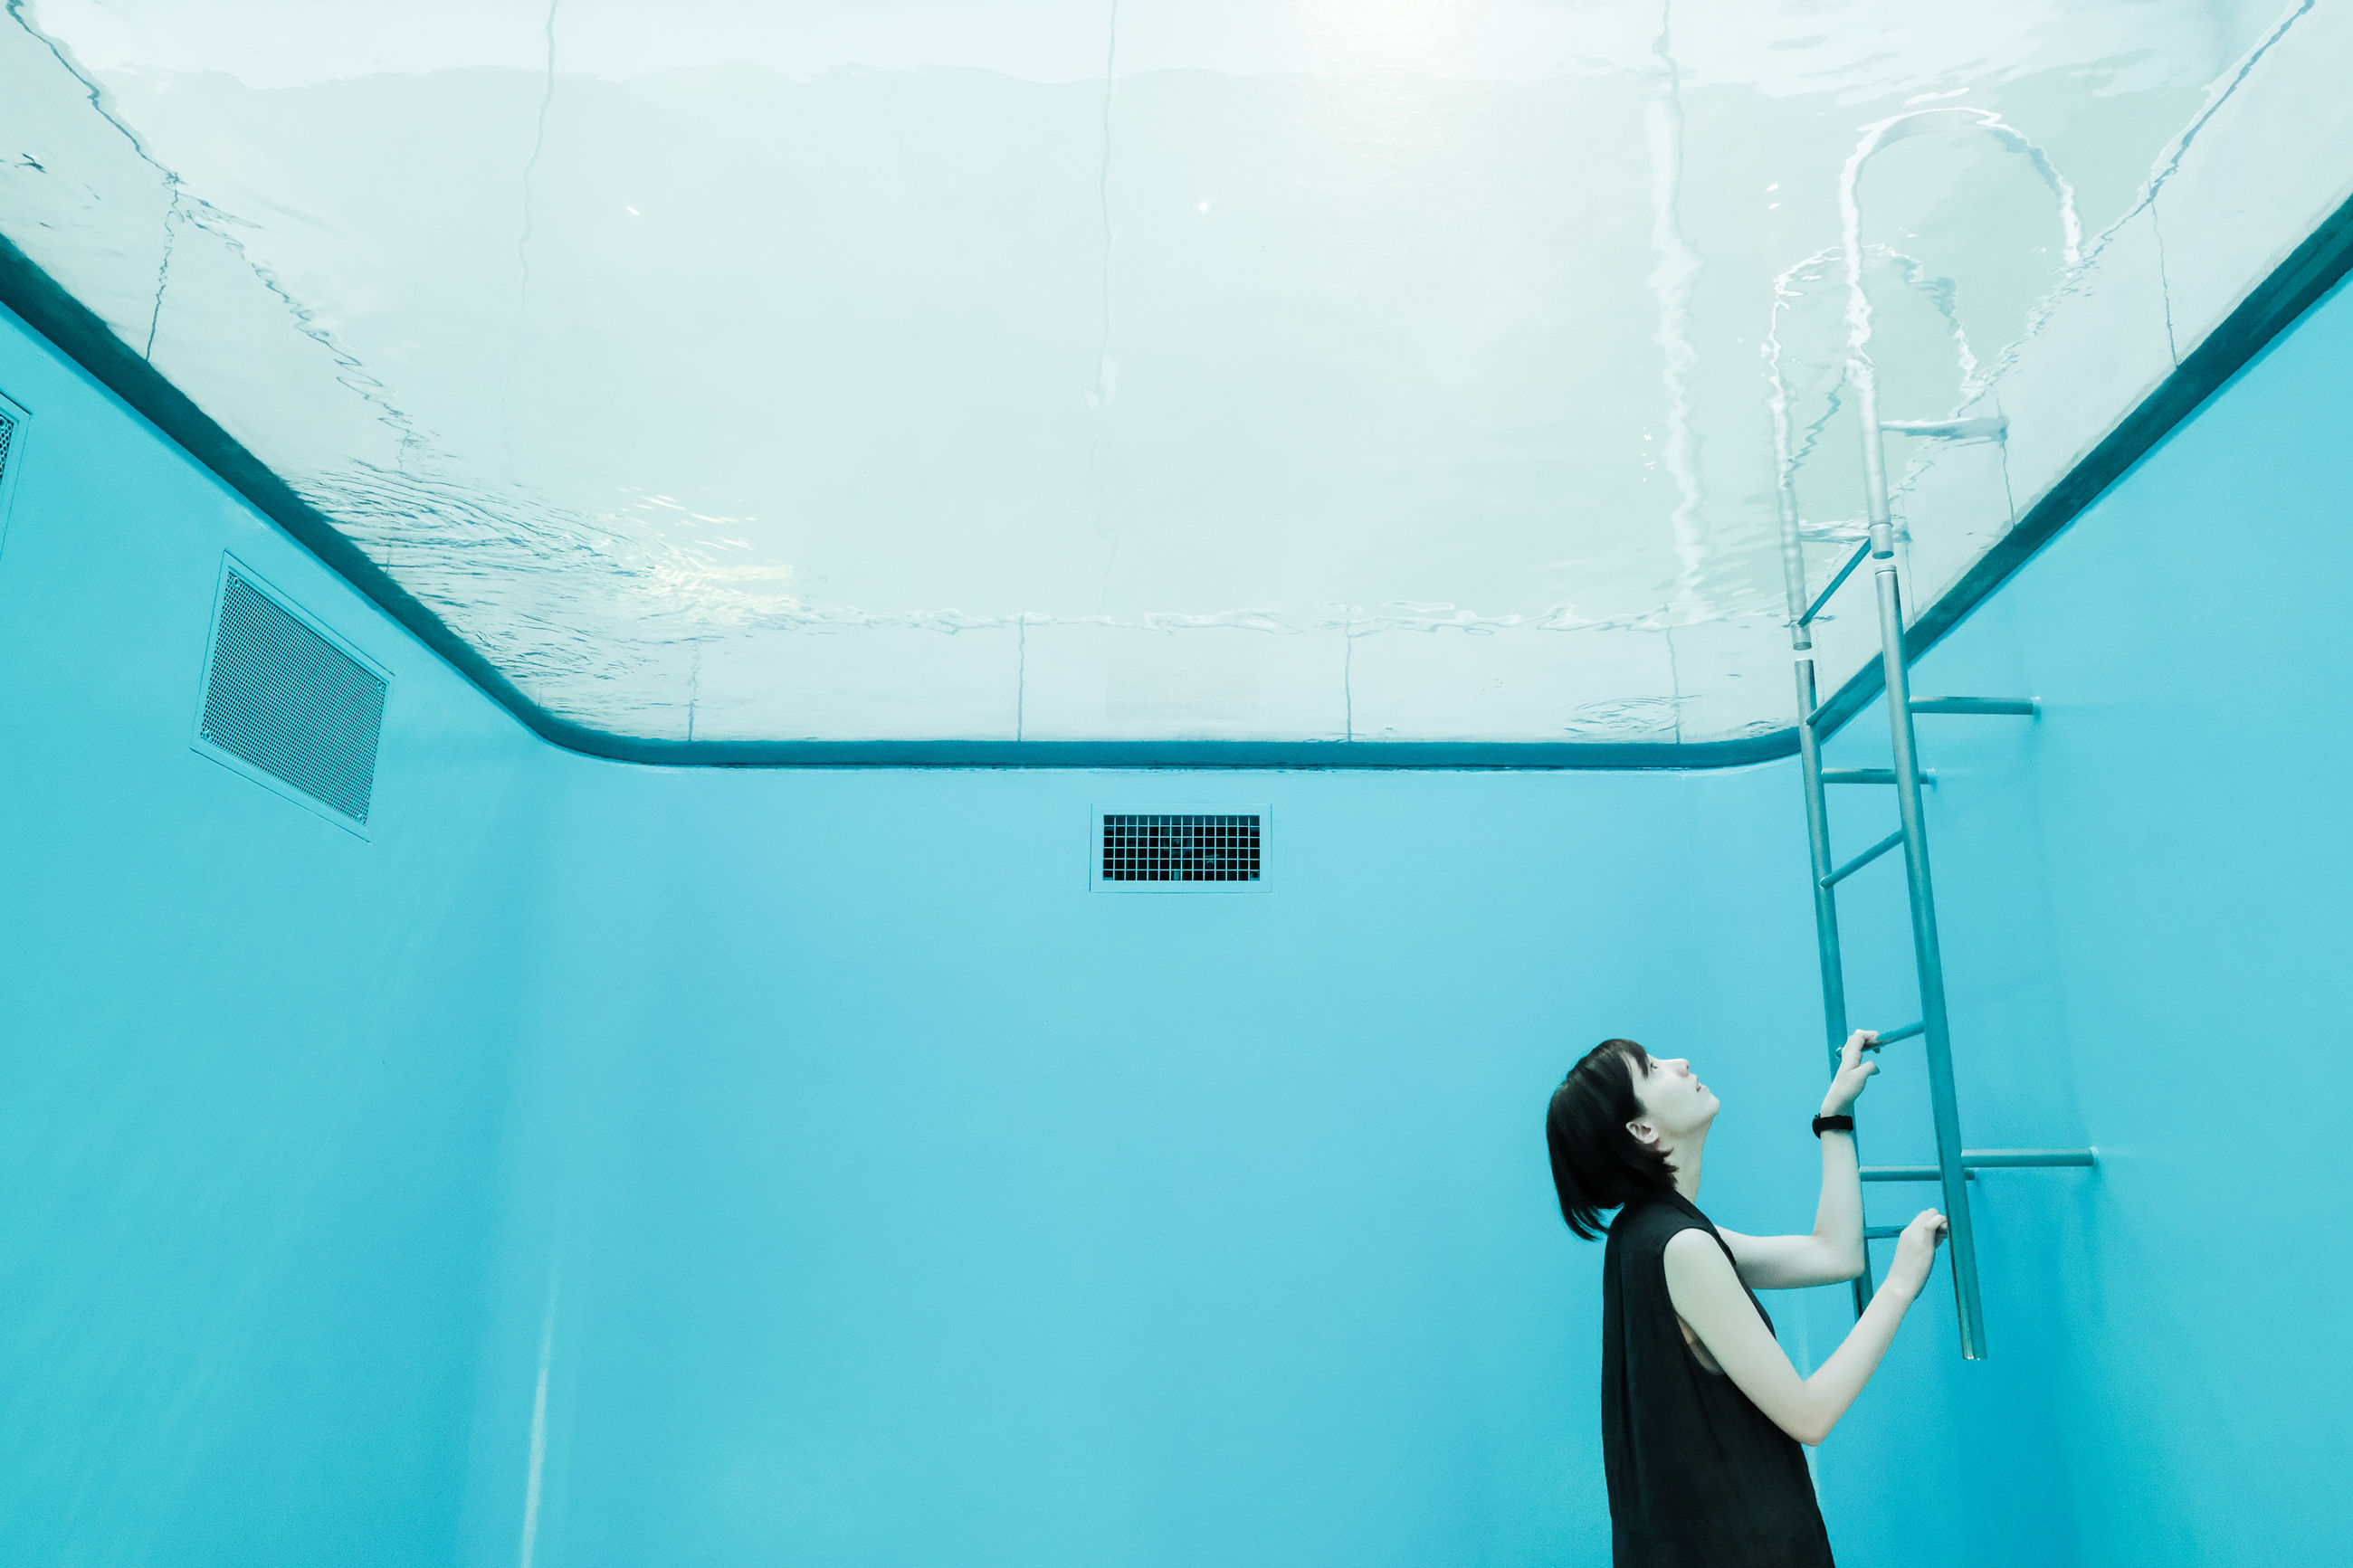 real people, architecture, one person, built structure, lifestyles, leisure activity, day, women, wall - building feature, building exterior, outdoors, technology, standing, men, adult, window, nature, blue, turquoise colored, ceiling